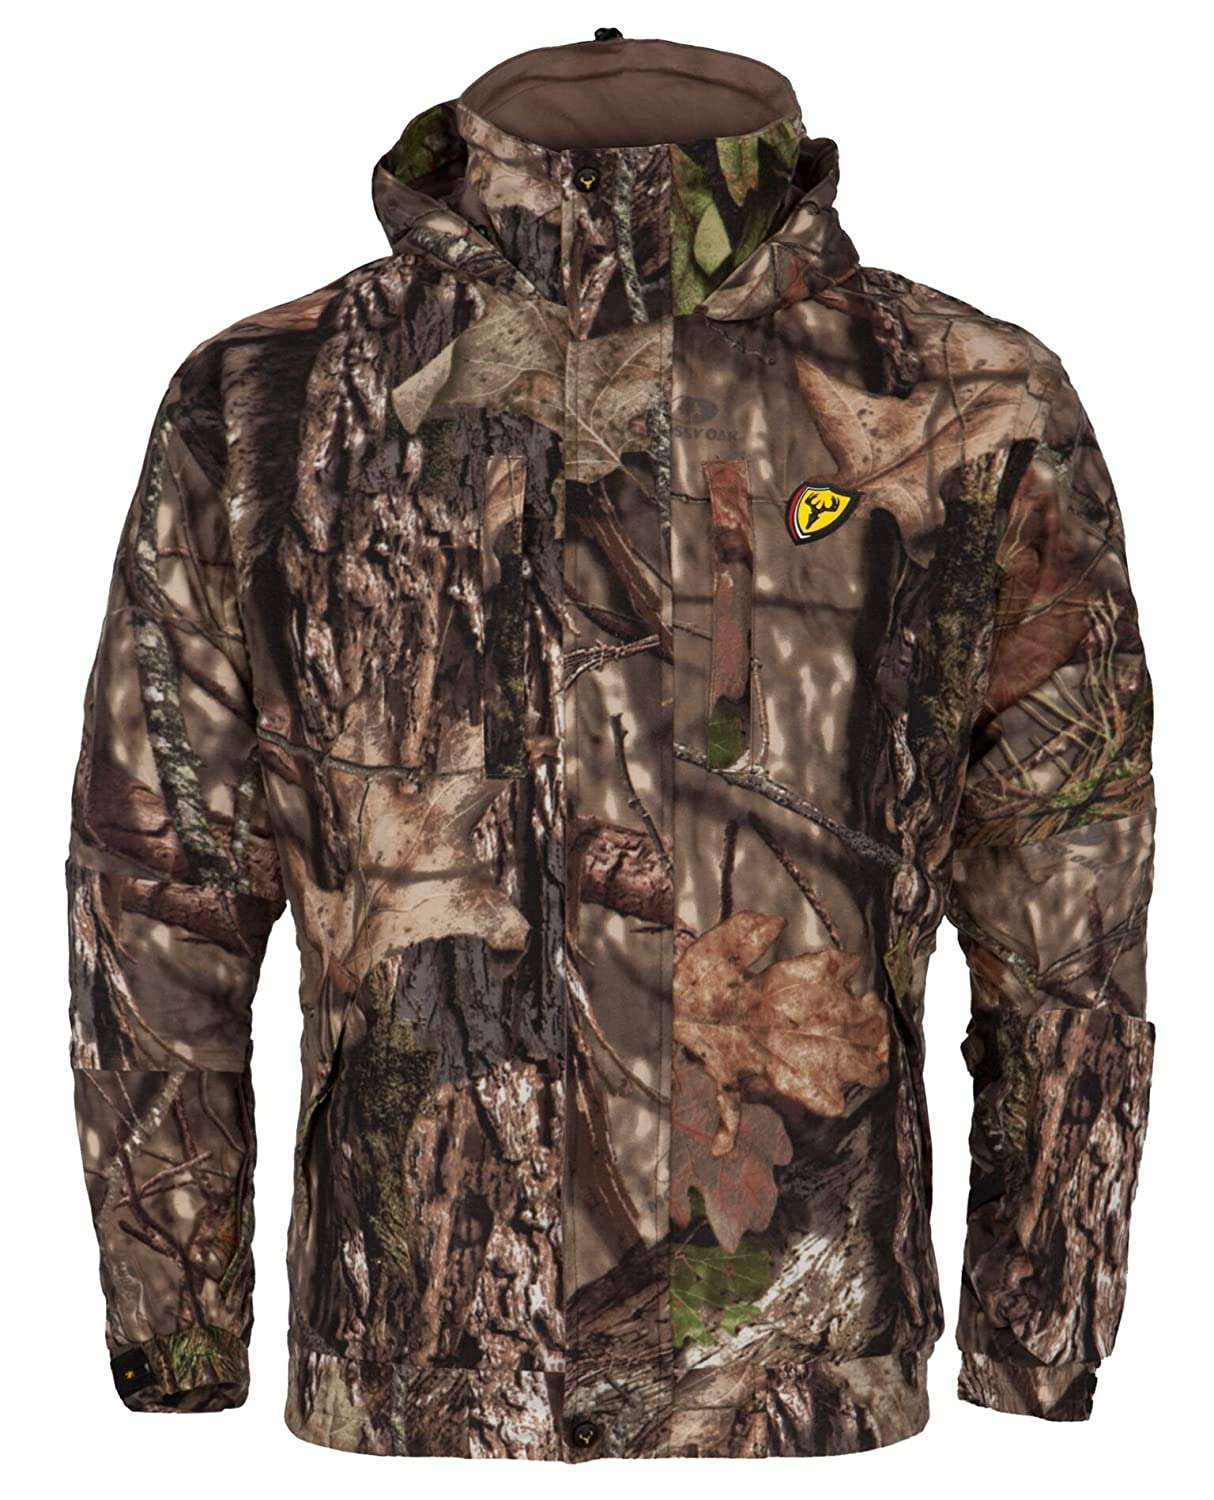 10c9208f6a483 Amazon.com : Scent Blocker Outfitter Jacket, Mossy Oak Country : Sports &  Outdoors